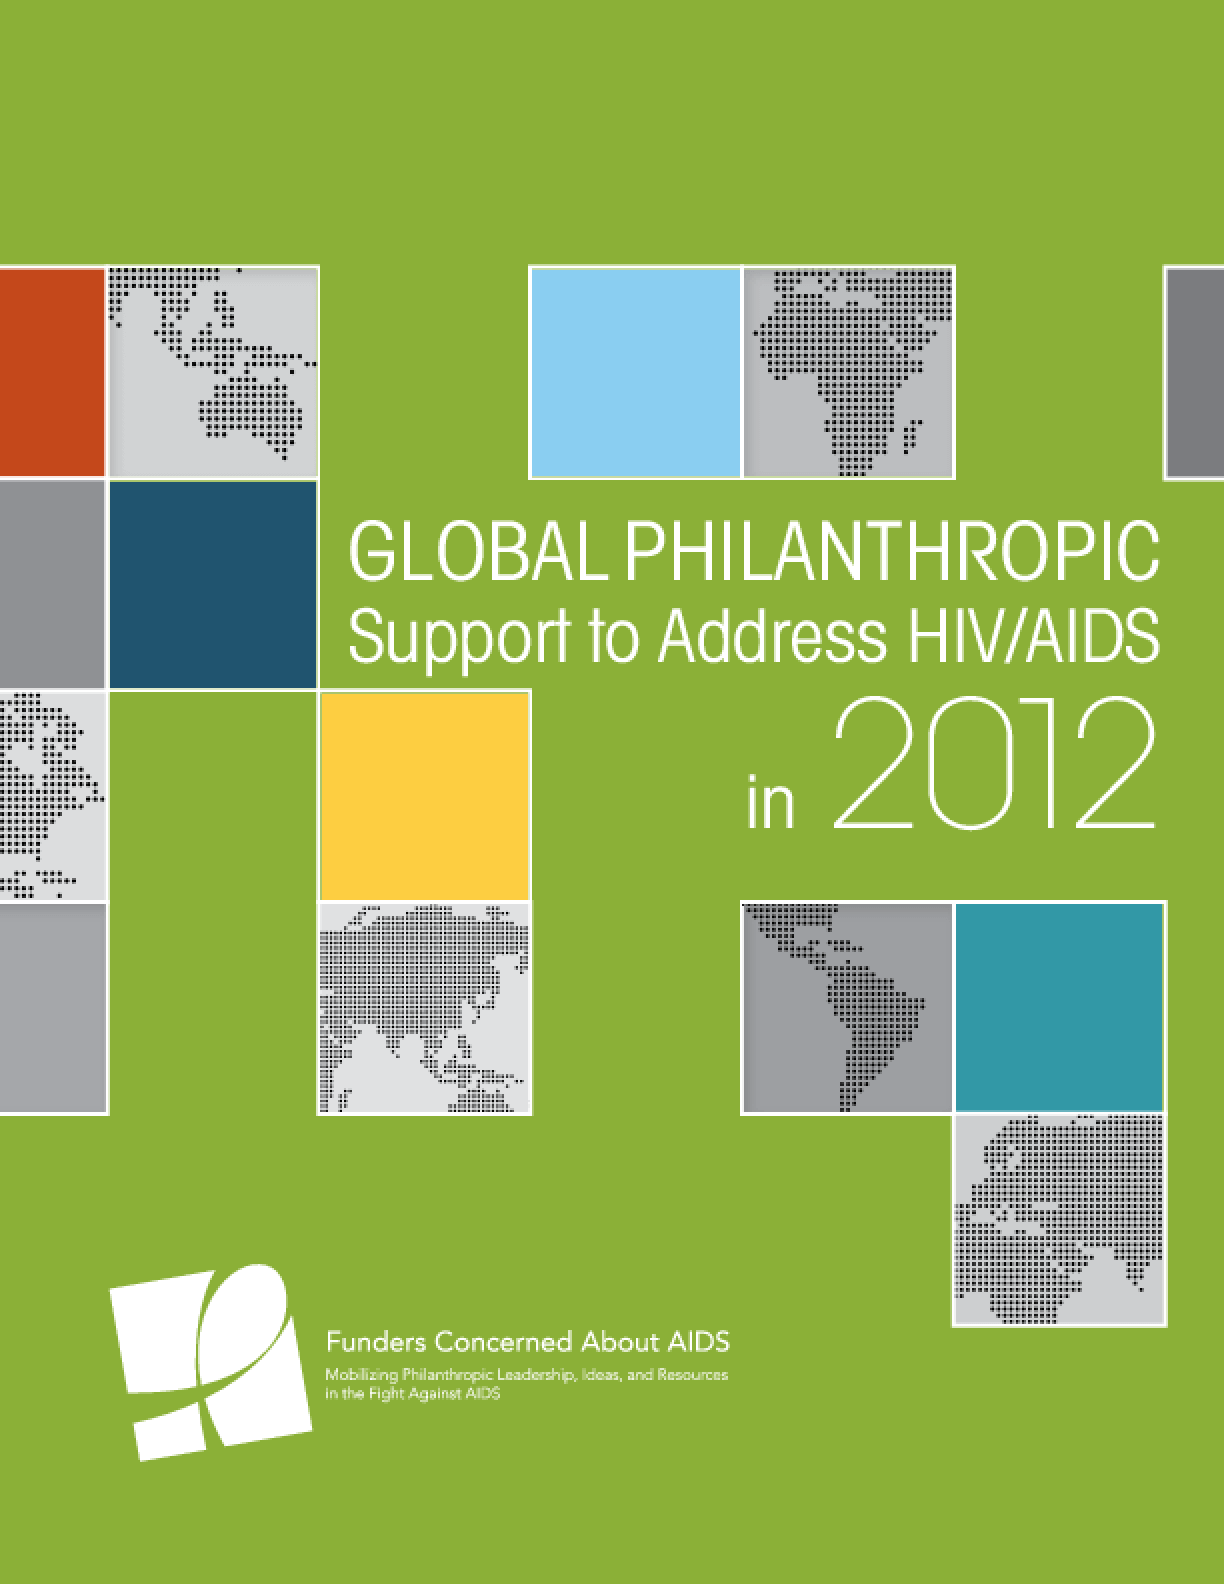 Global Philanthropic Support to Address HIV/AIDs in 2012